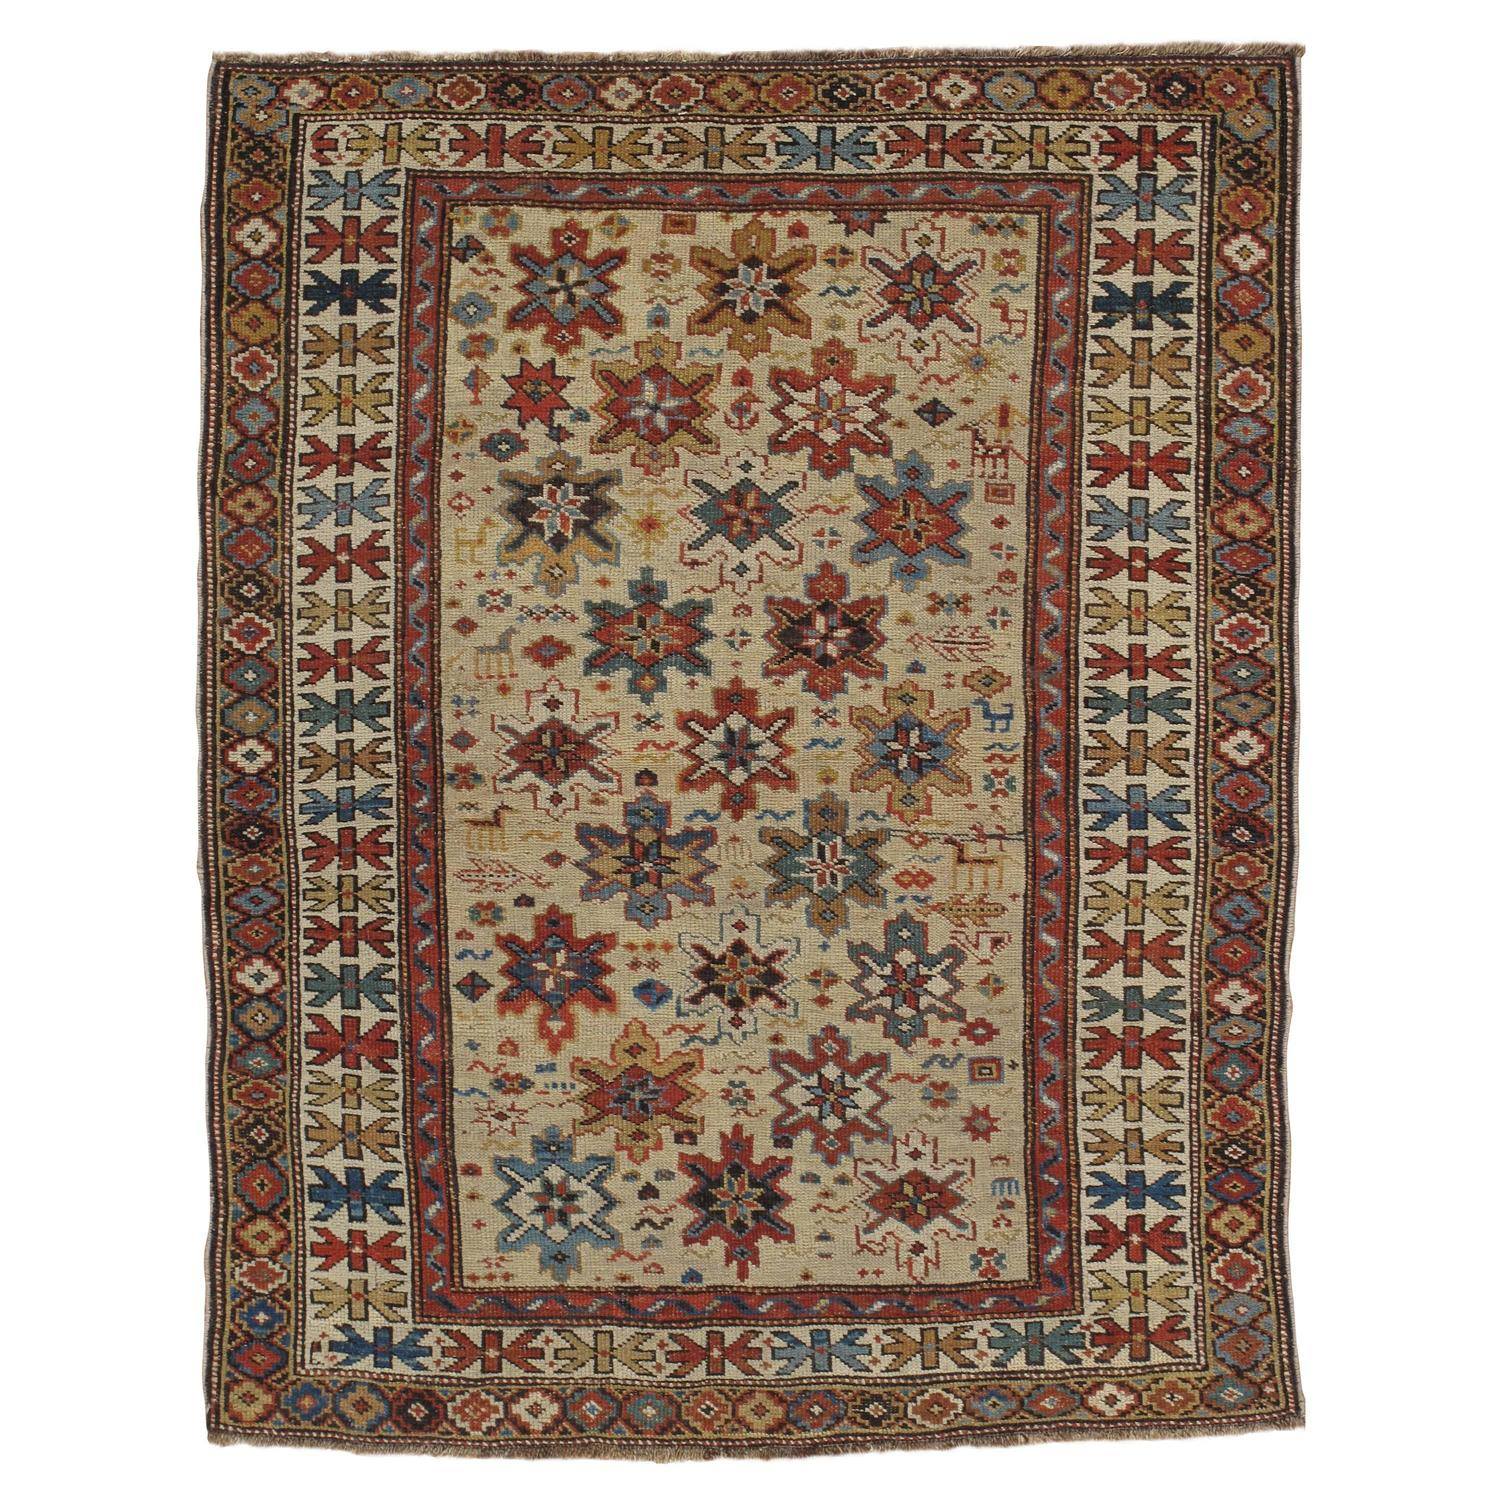 Antique Russian Shirvan Rug, Oriental Rugs, Russian Rugs